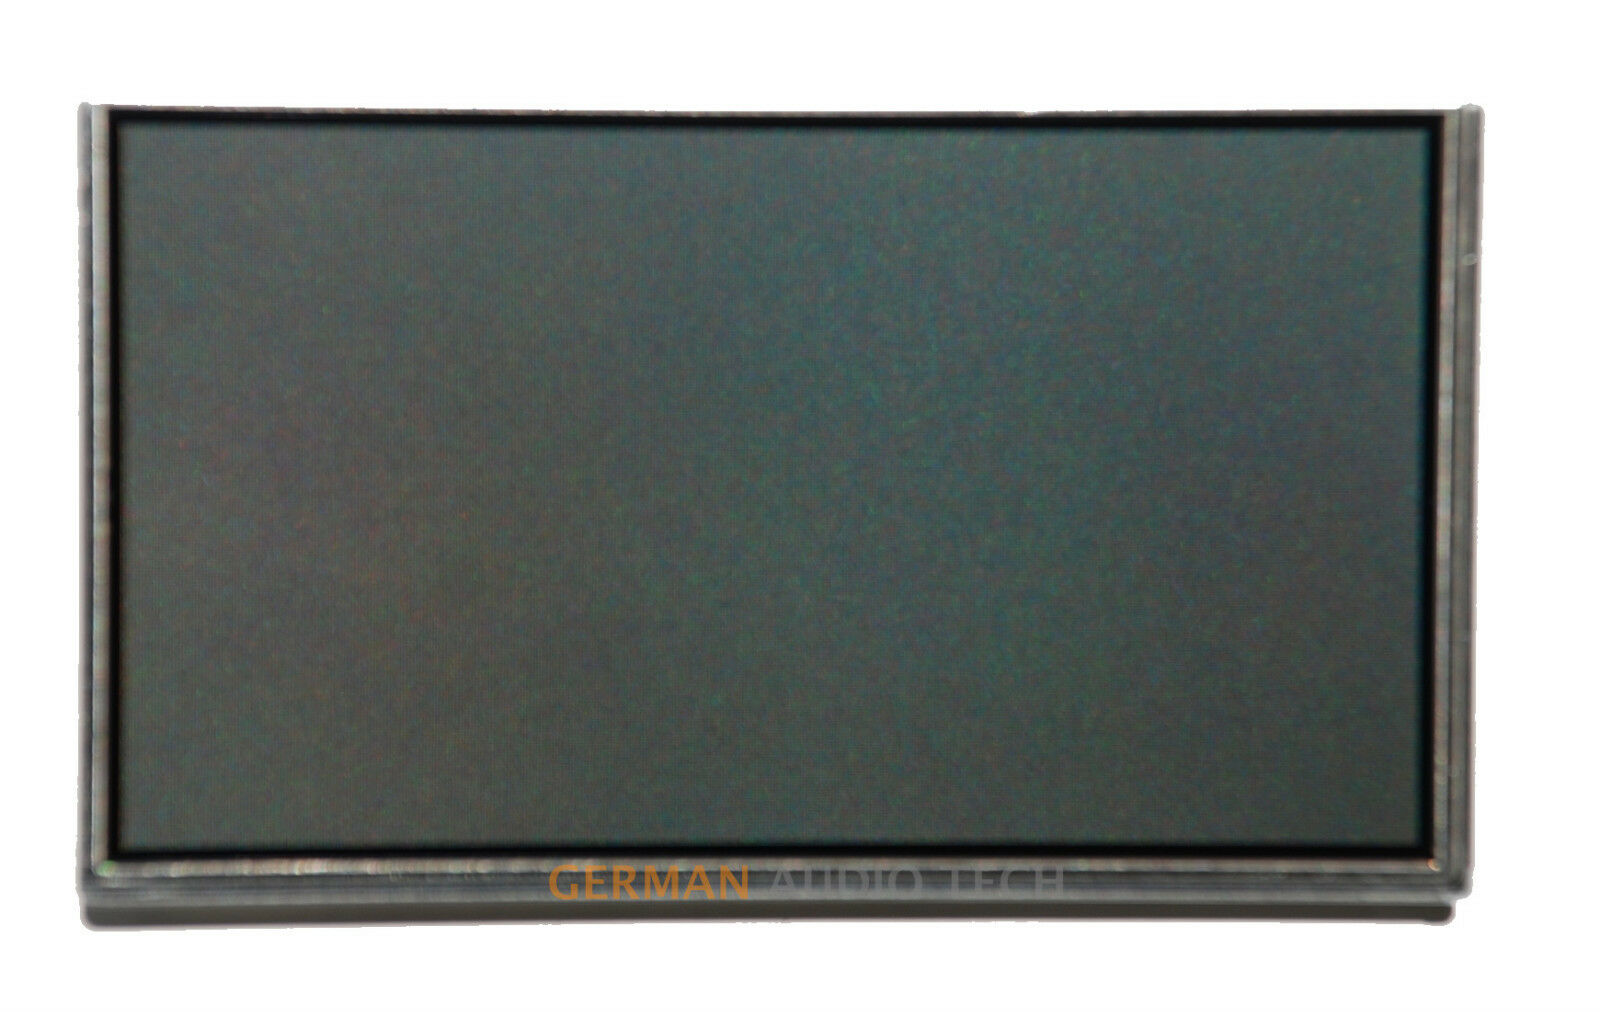 LCD Screen Display For 2002-05 RANGE ROVER L322 BMW E46 1999-2006 325 328 330 M3